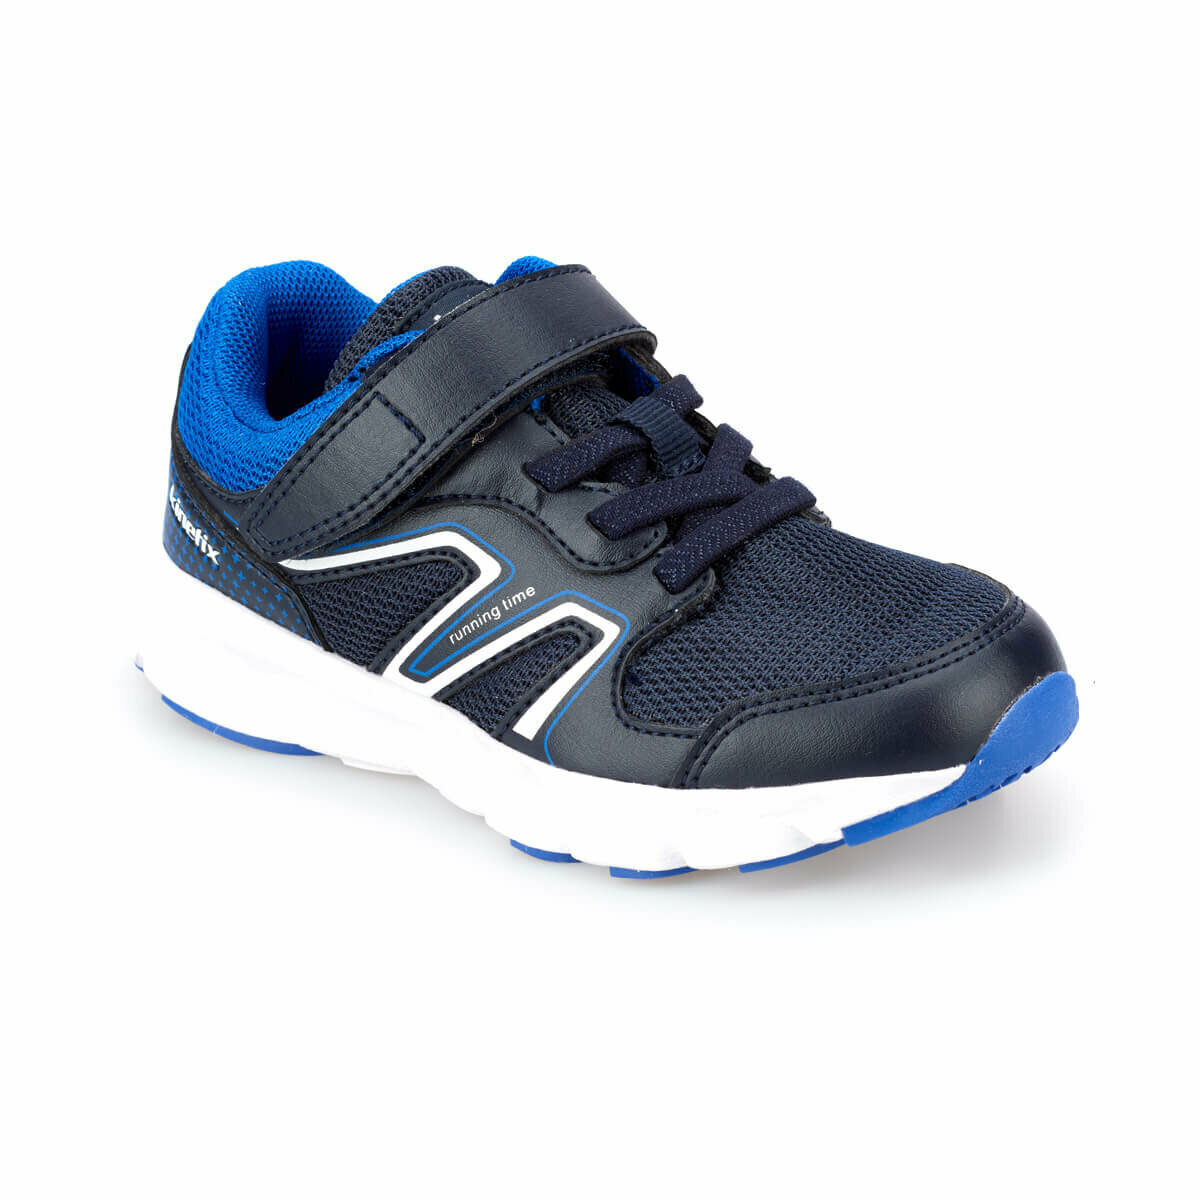 FLO JIKA Navy Blue Male Child Running Shoes KINETIX